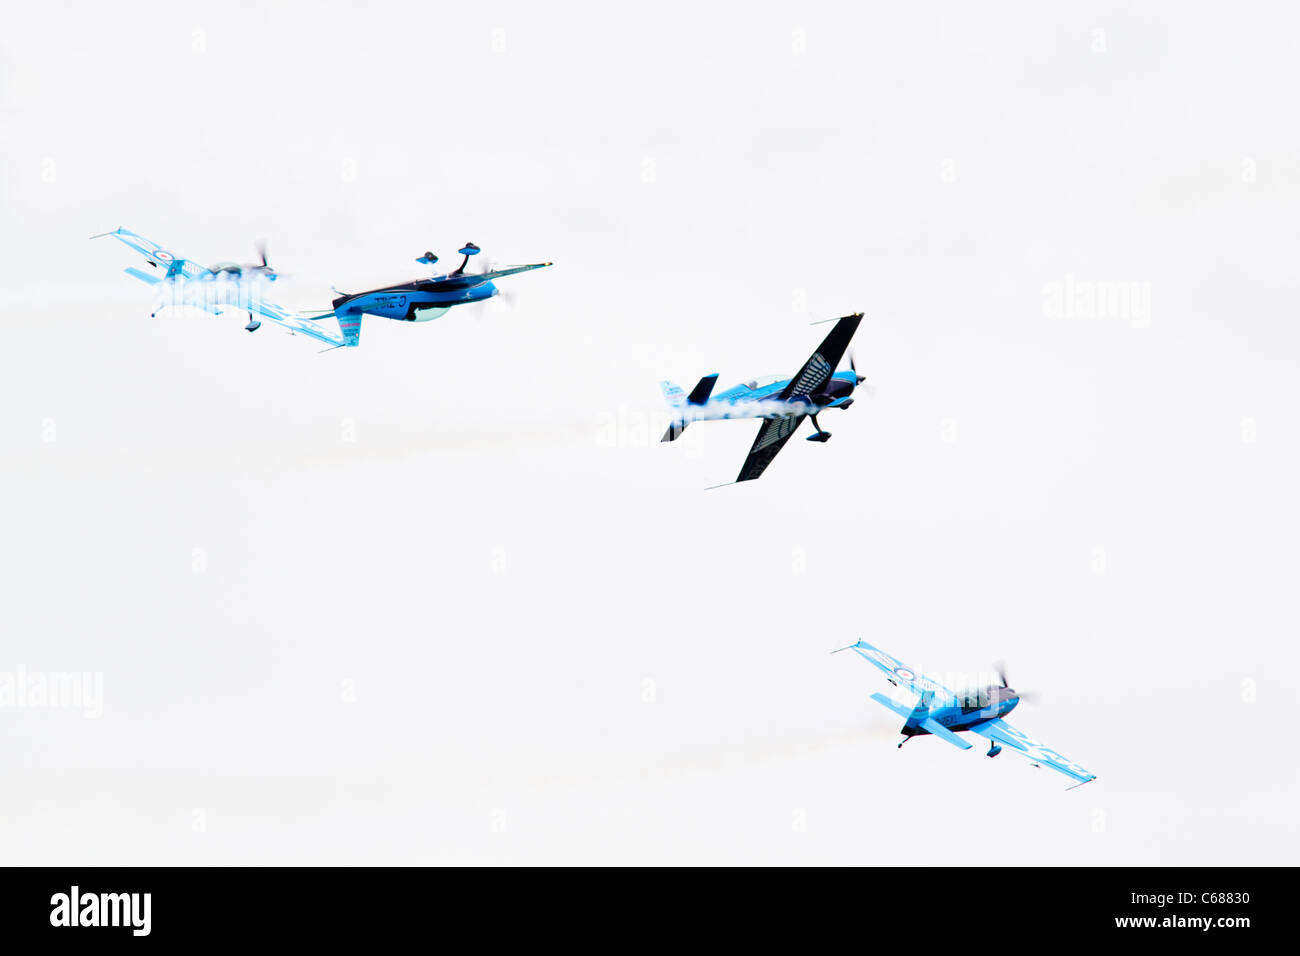 The Blades aerobatics team, flying 4 Extra EA-300 LP's, at Eastbourne Airbourne 2011, East Sussex, UK - Stock Image